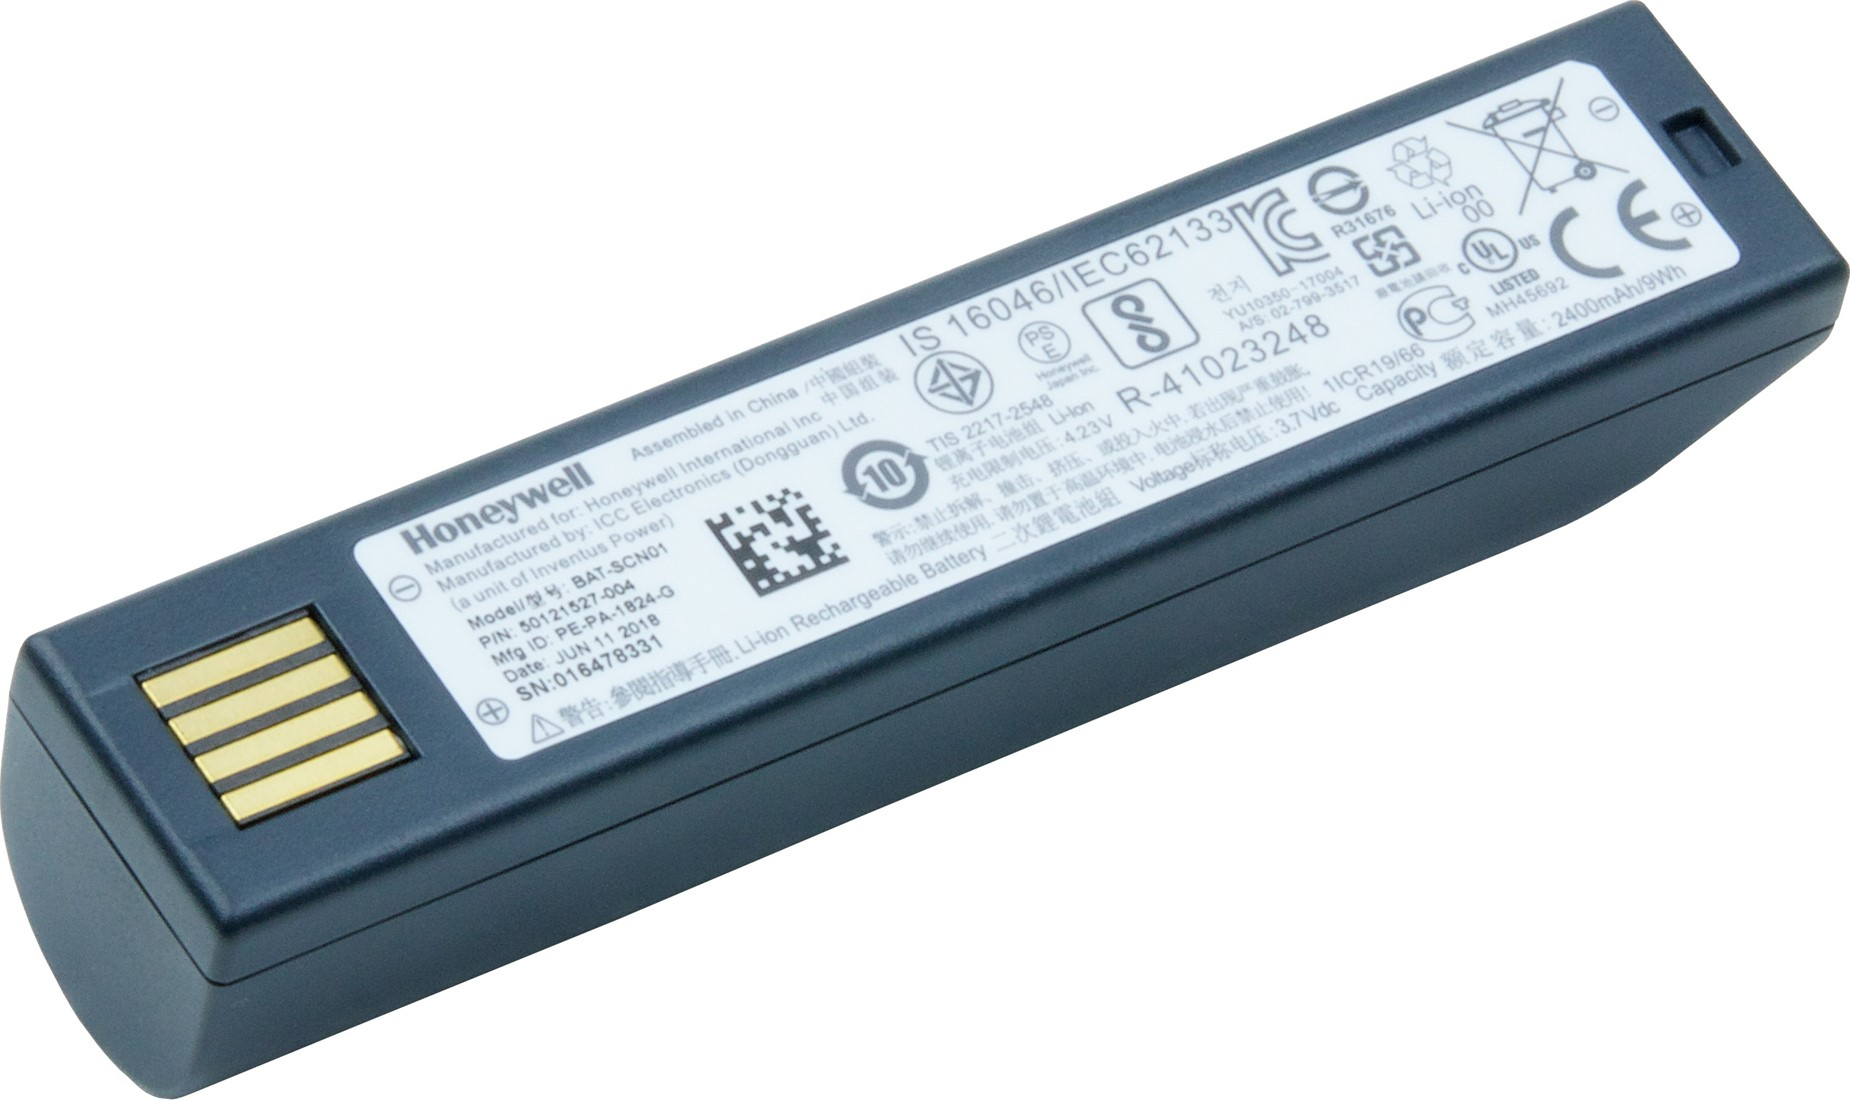 Honeywell - Mobile               Battery Li-ion Battery              Voyager 1202 Xenon 1902 Granit      Bat-scn01a